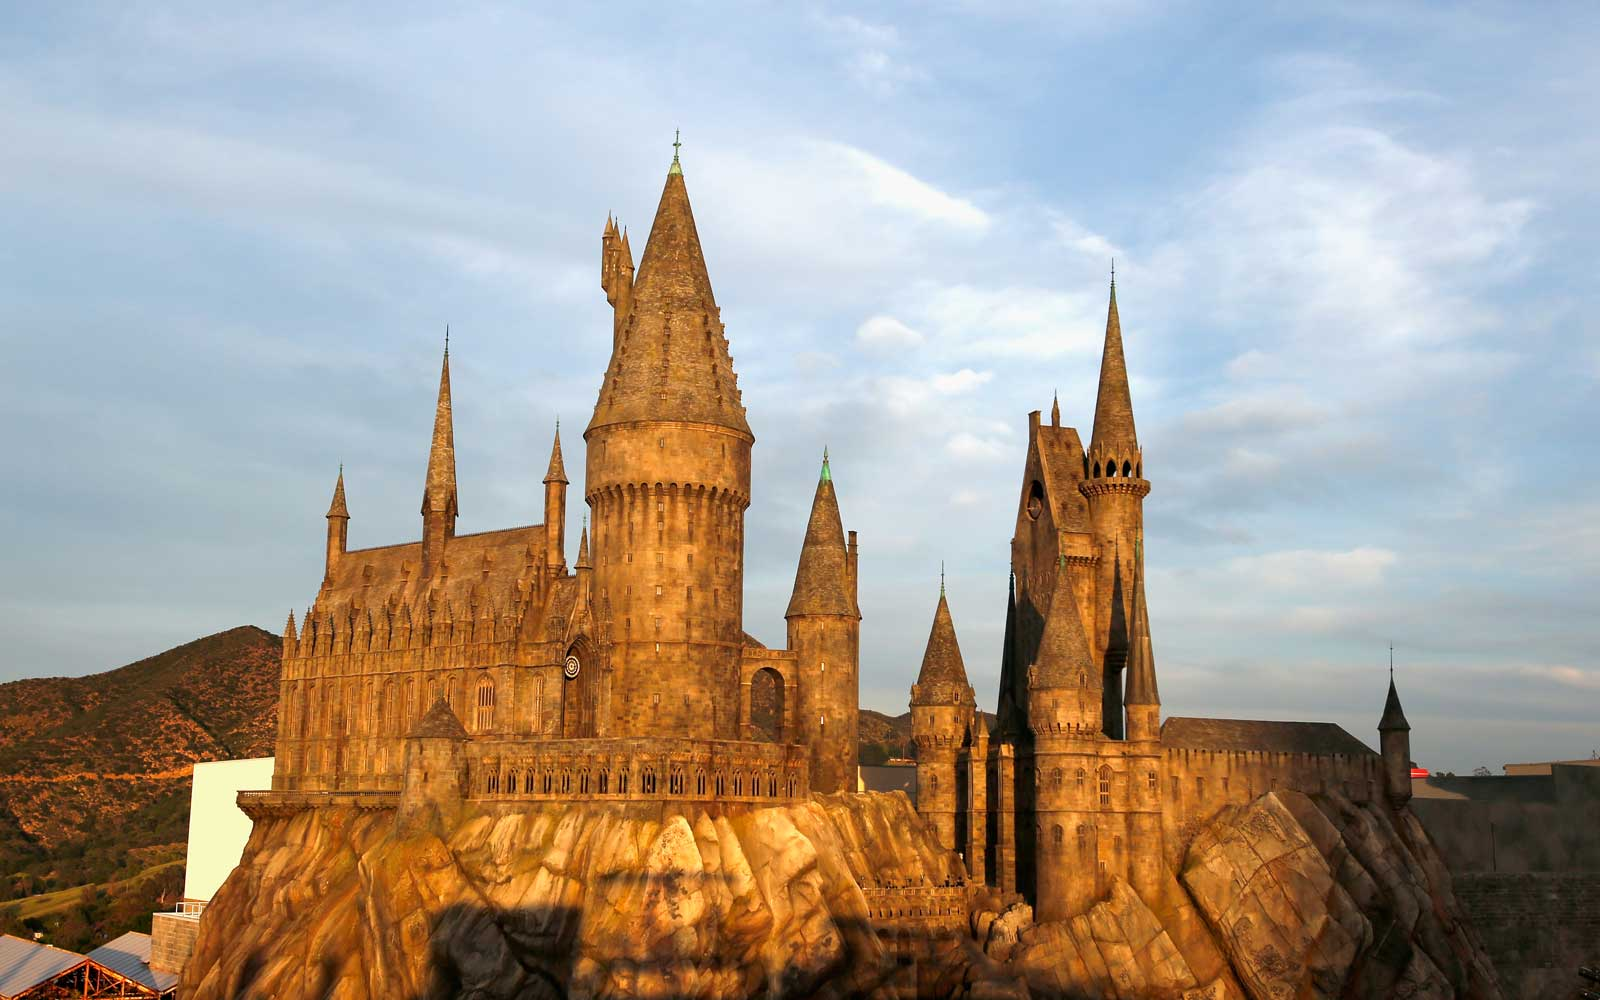 Exterior view of Hogwarts castle at the opening of the 'Wizarding World of Harry Potter' at Universal Studios Hollywood